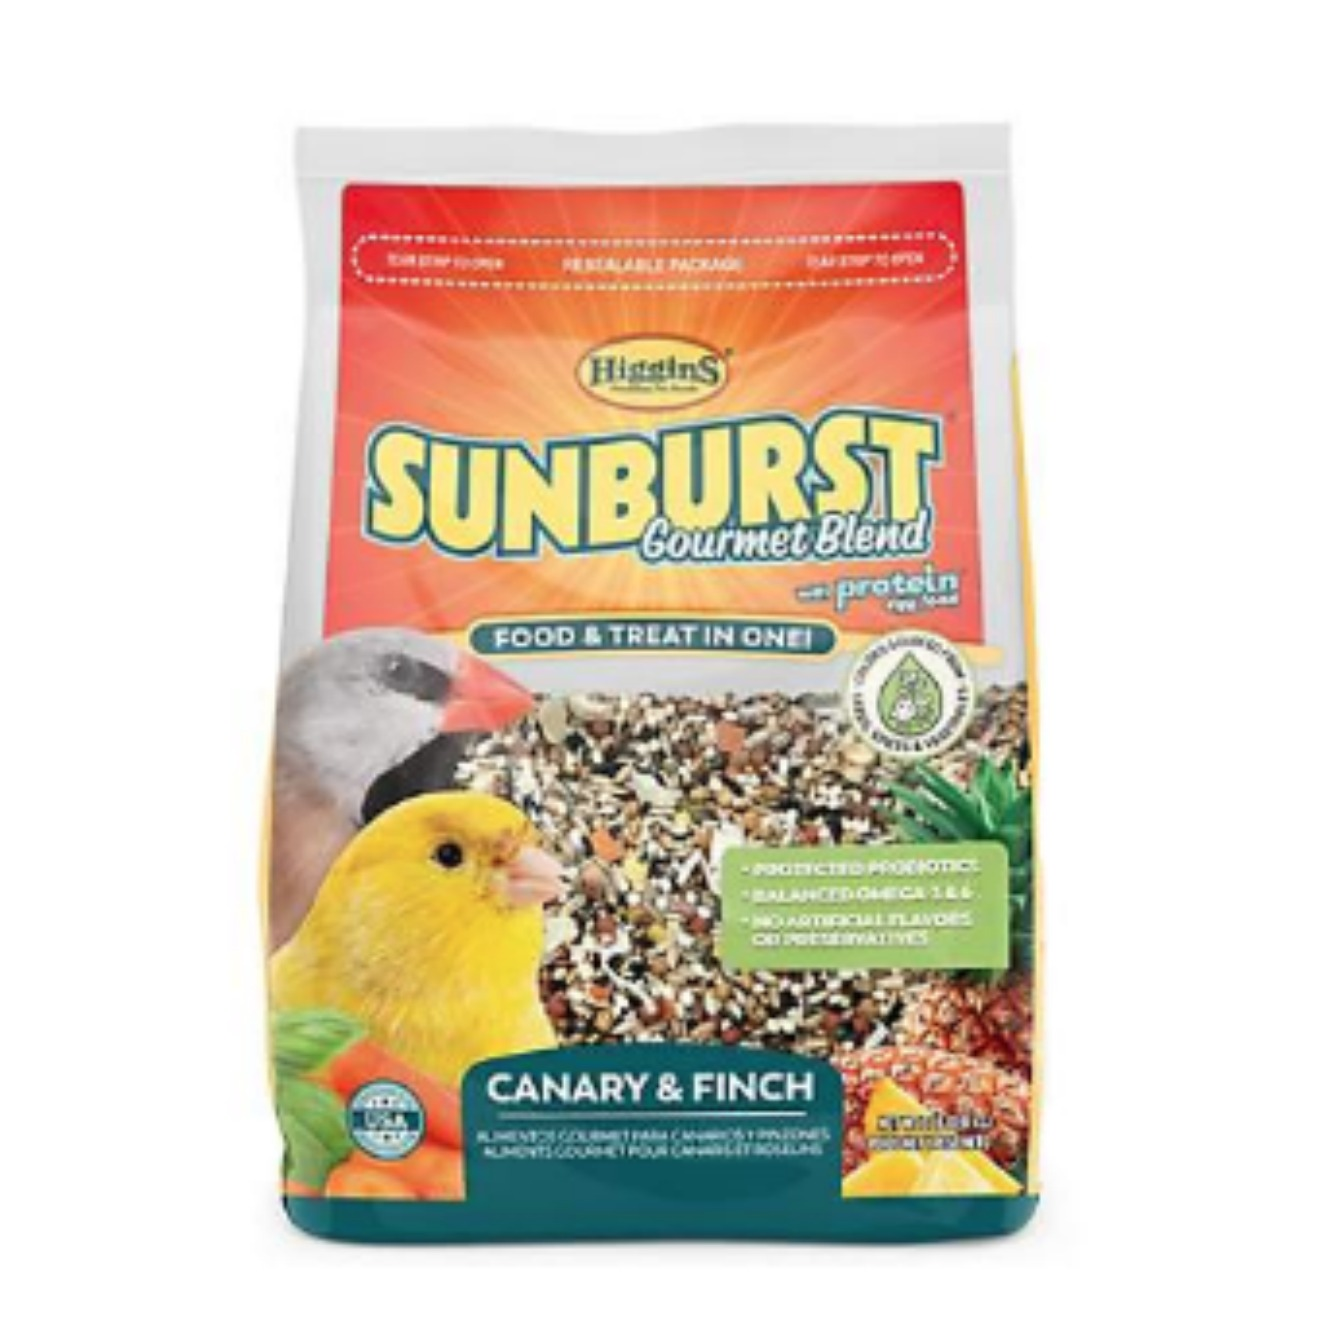 Higgins Sunburst Canary Finch Gourmet Bird Food 2 lb (1.36 Kg) NEW